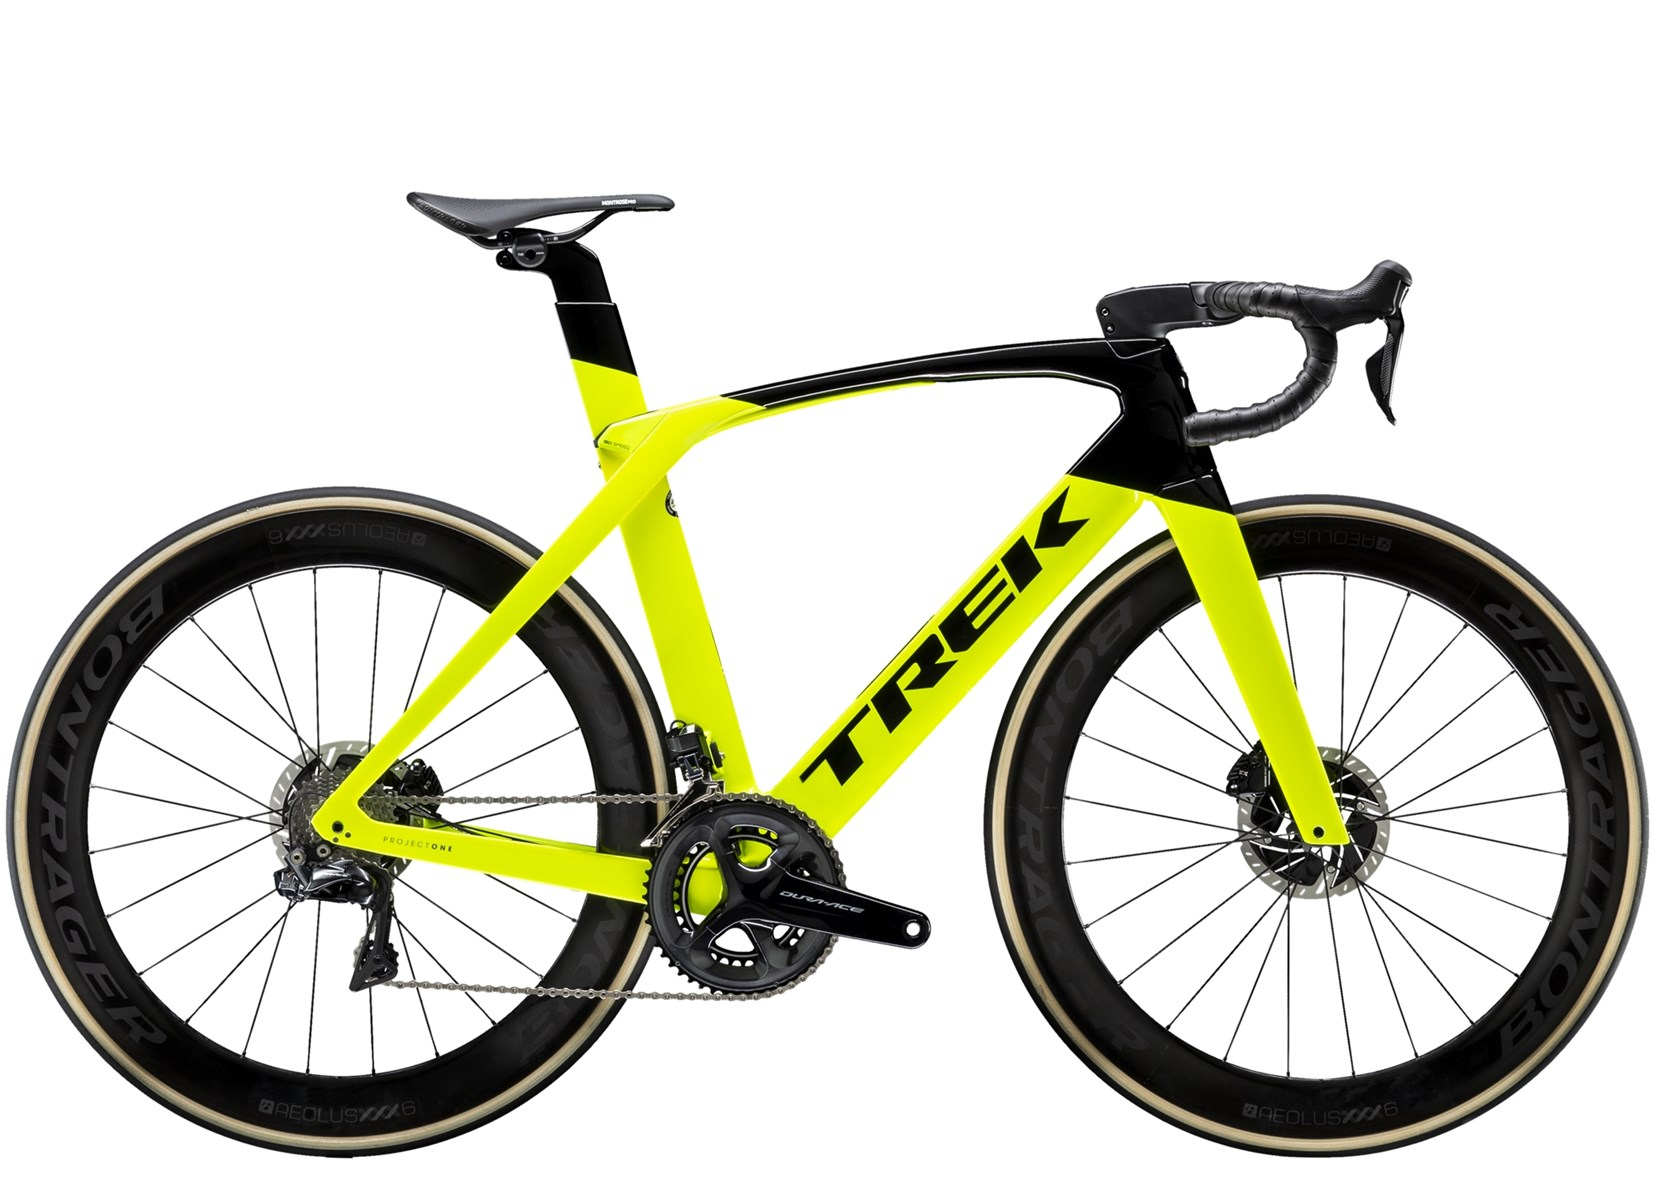 c5eeb86c1d7 2019 Trek Madone SLR 9 Disc Carbon Mens Road bike in Yellow. 0 (Be the  first to add a review!)